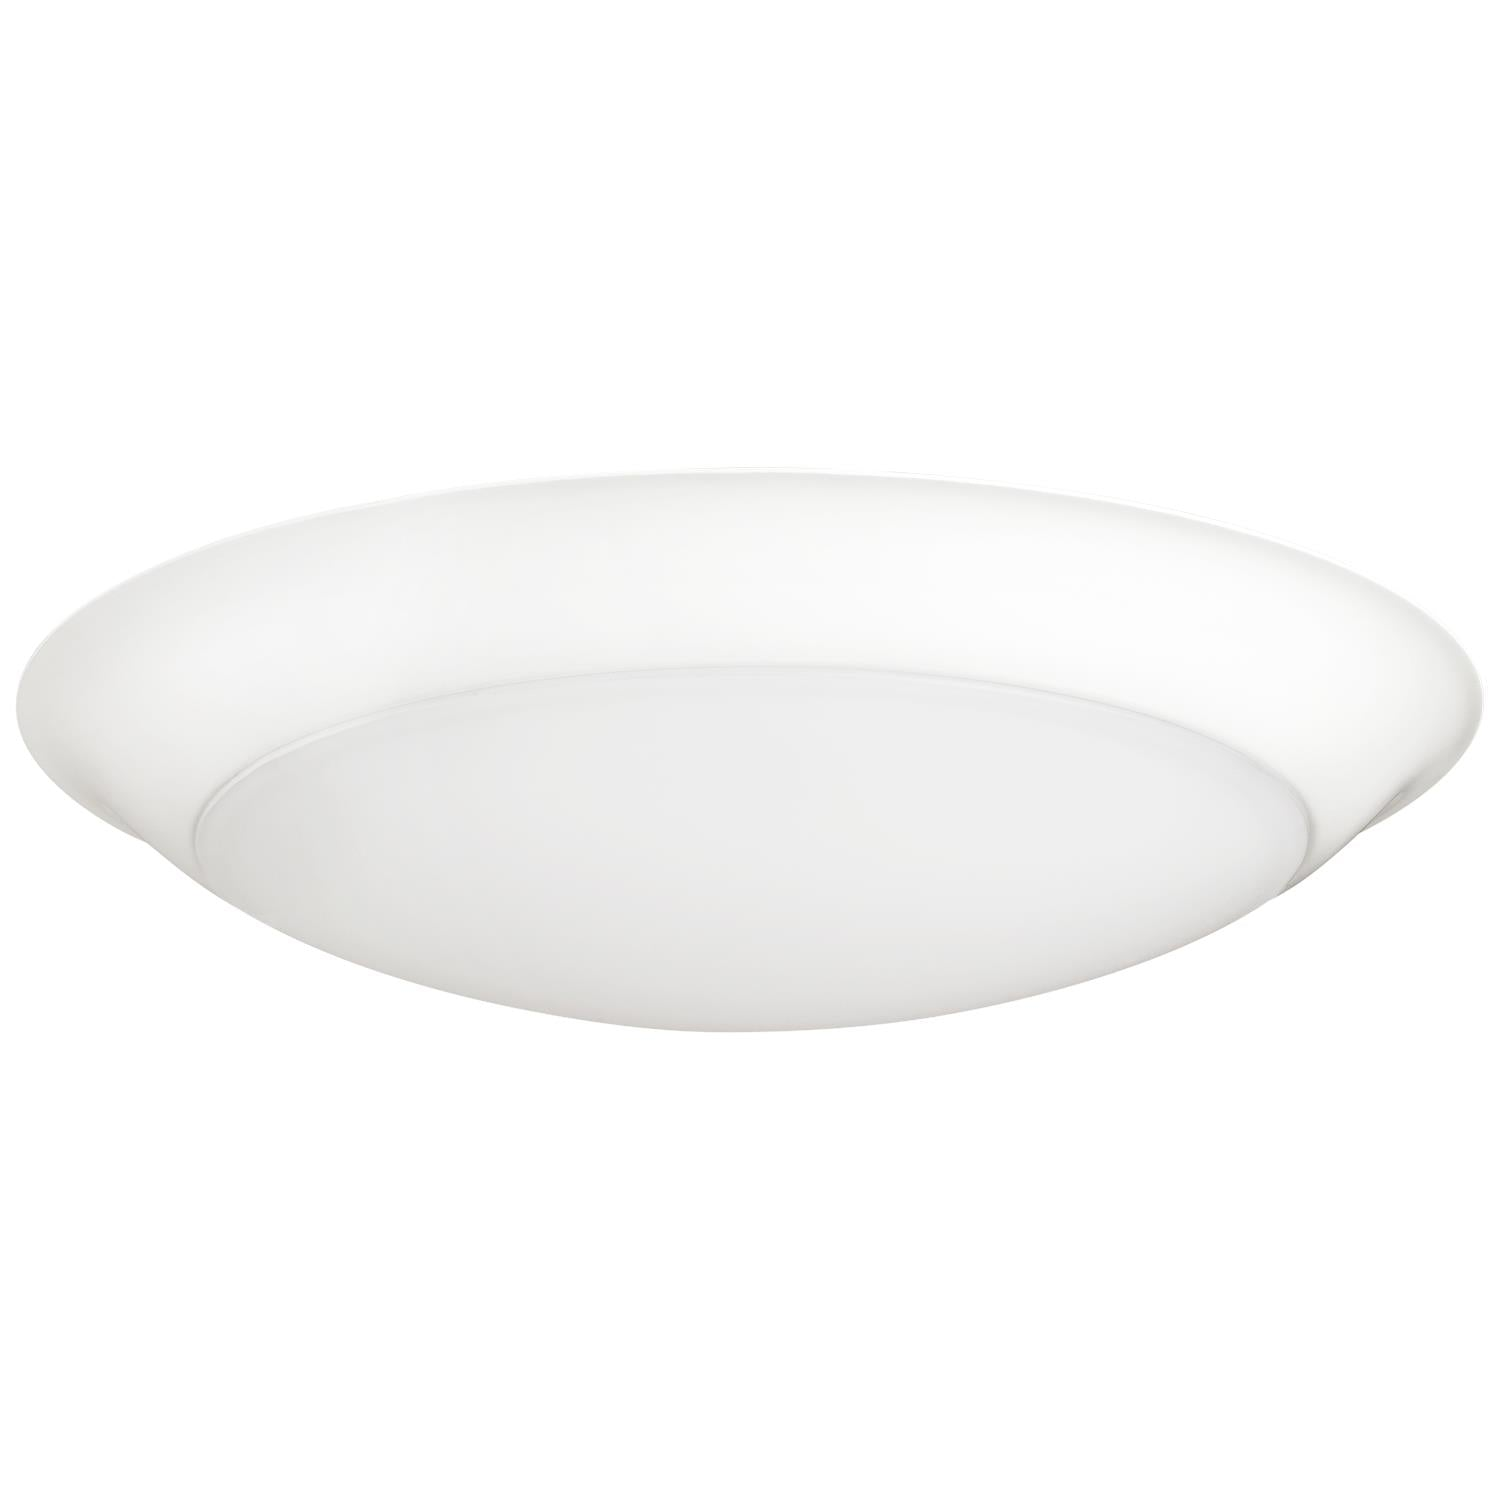 "SUNLITE 6"" Round LED Slim Downlights Mini Flat Panel Fixture 3000K - Warm White"